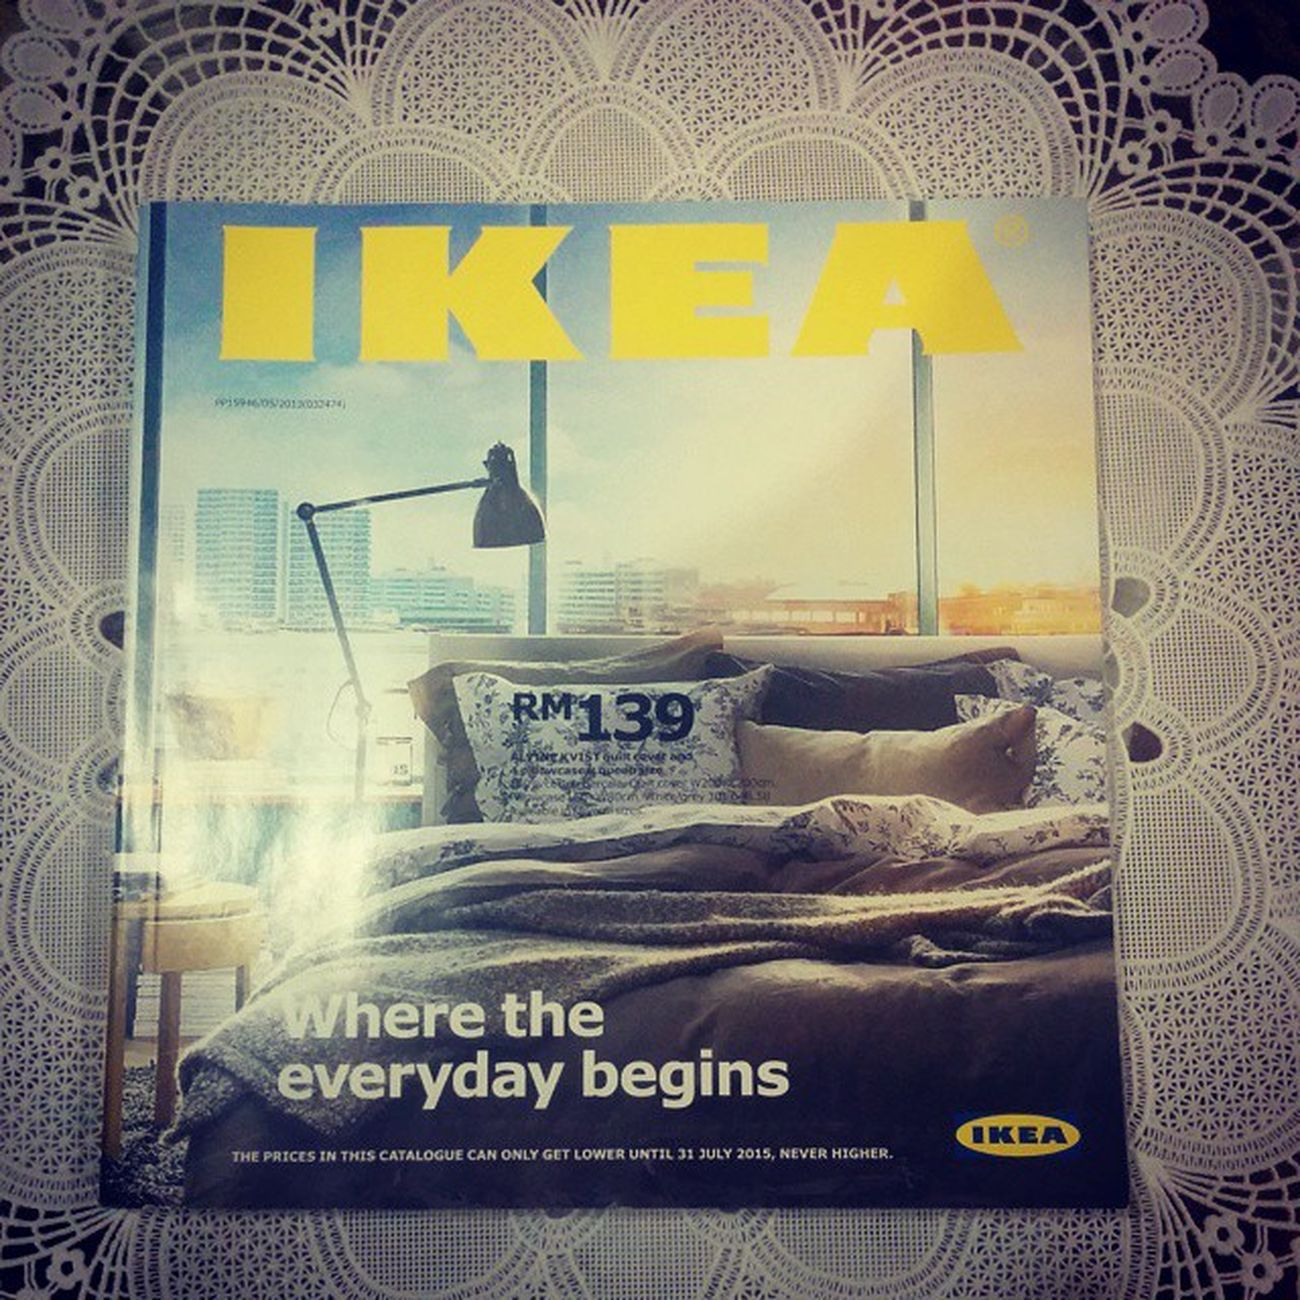 I have the bookbook IKEA BookBook Iphone6parody